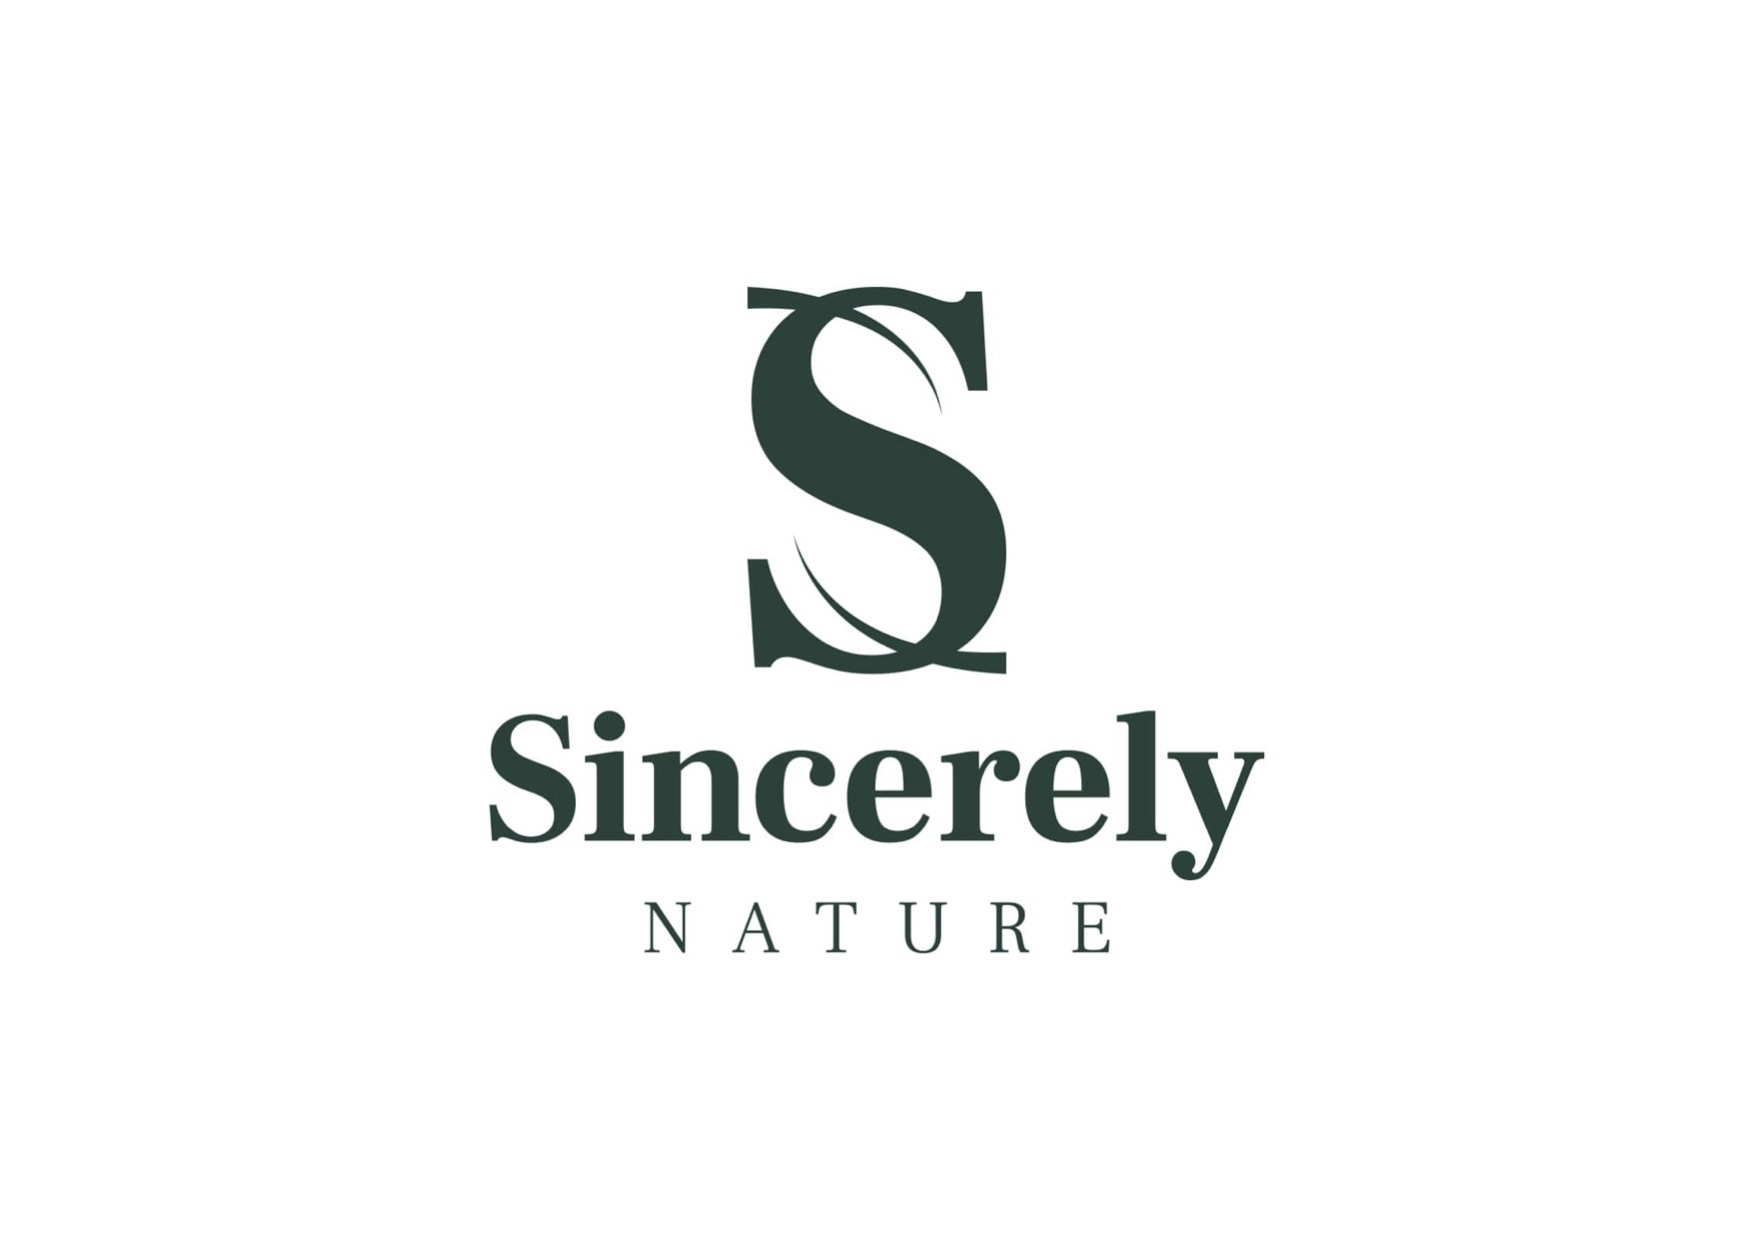 SINCERELY NATURE